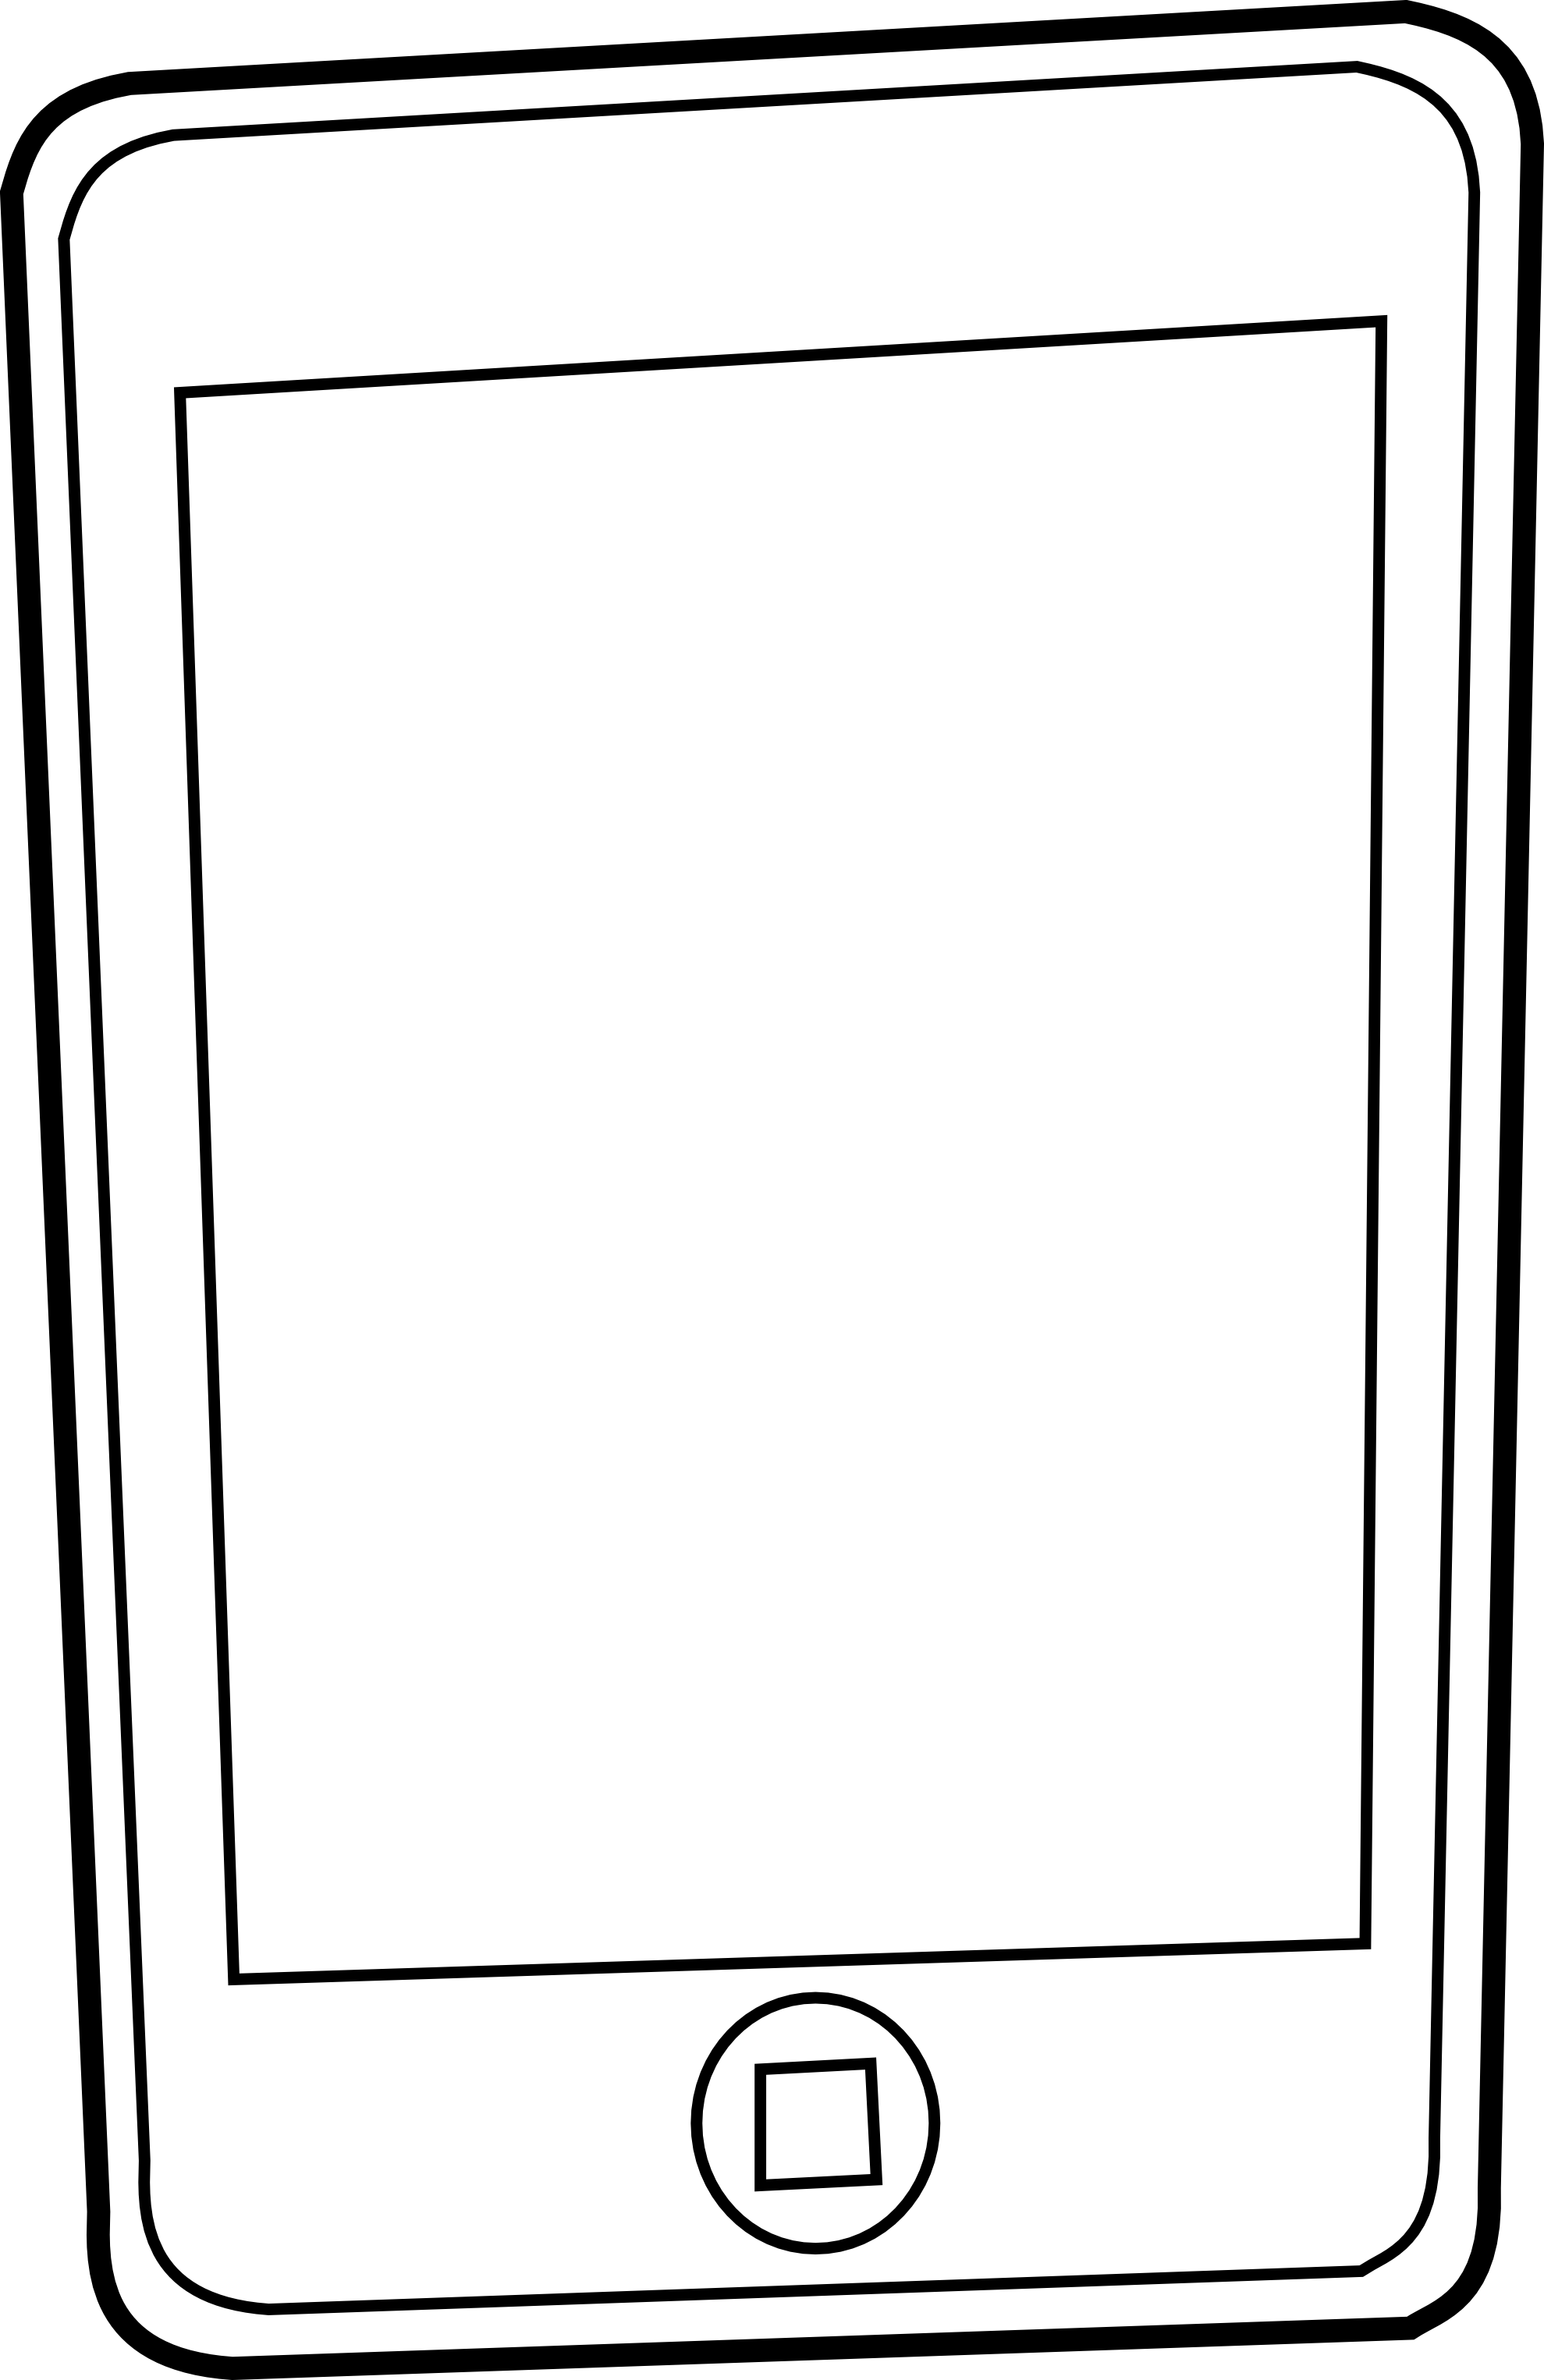 Iphone Clipart Dimensions.